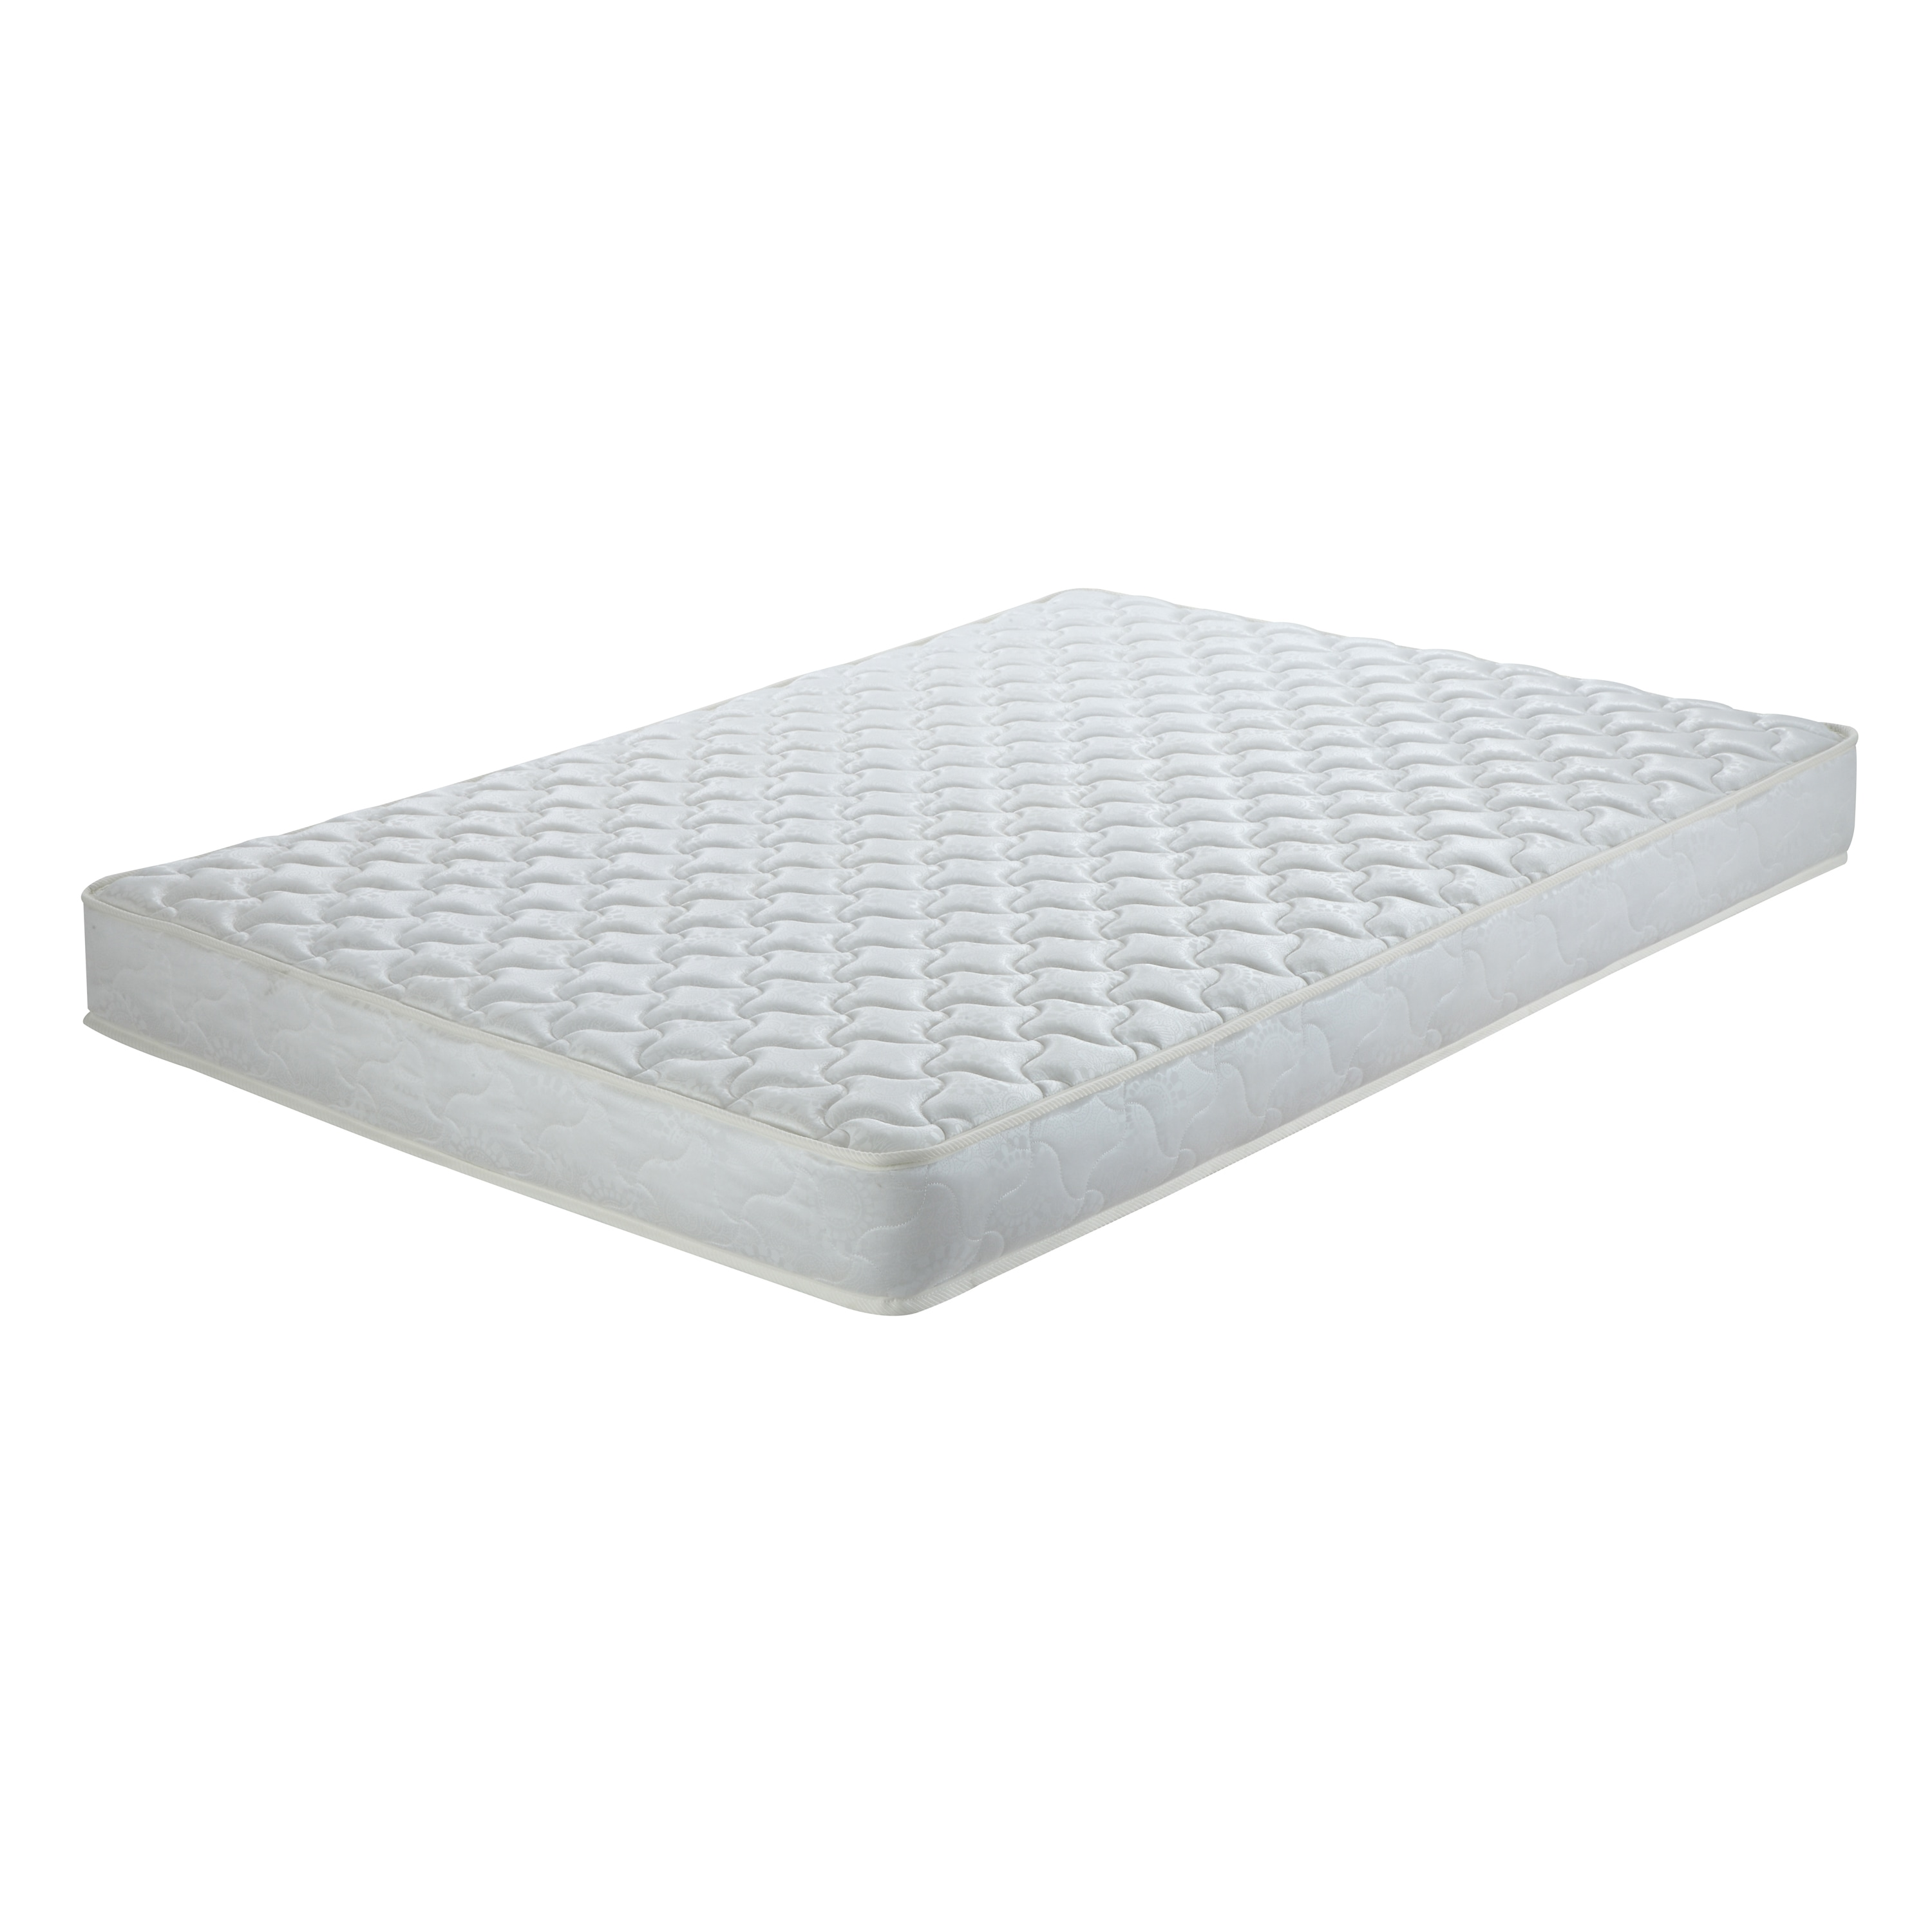 king top per tody mattress box memory and shippg foam size full dimensions pillow topper set queen spring